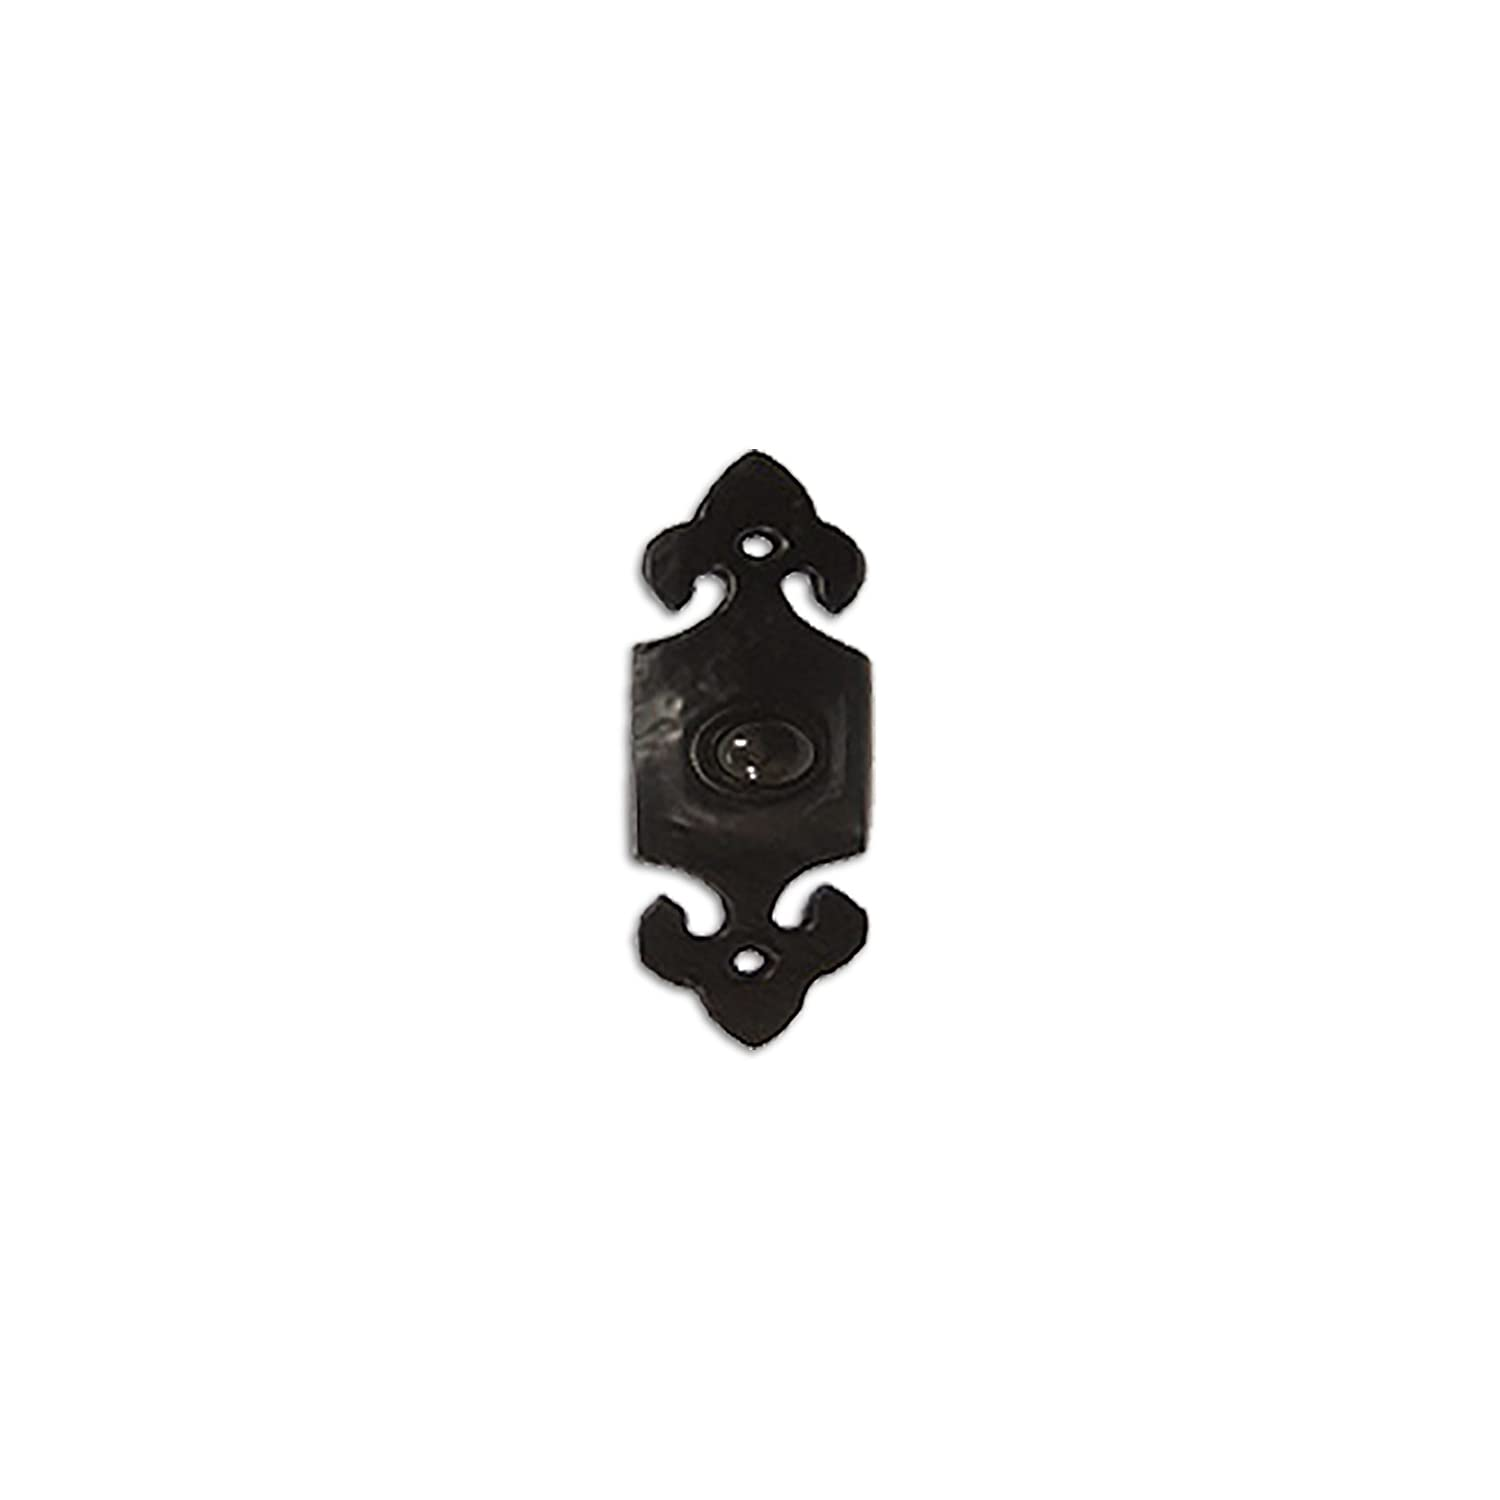 RCH Hardware Fancy Decorative Wrought Iron Bell Push, Black Matching Screws Included